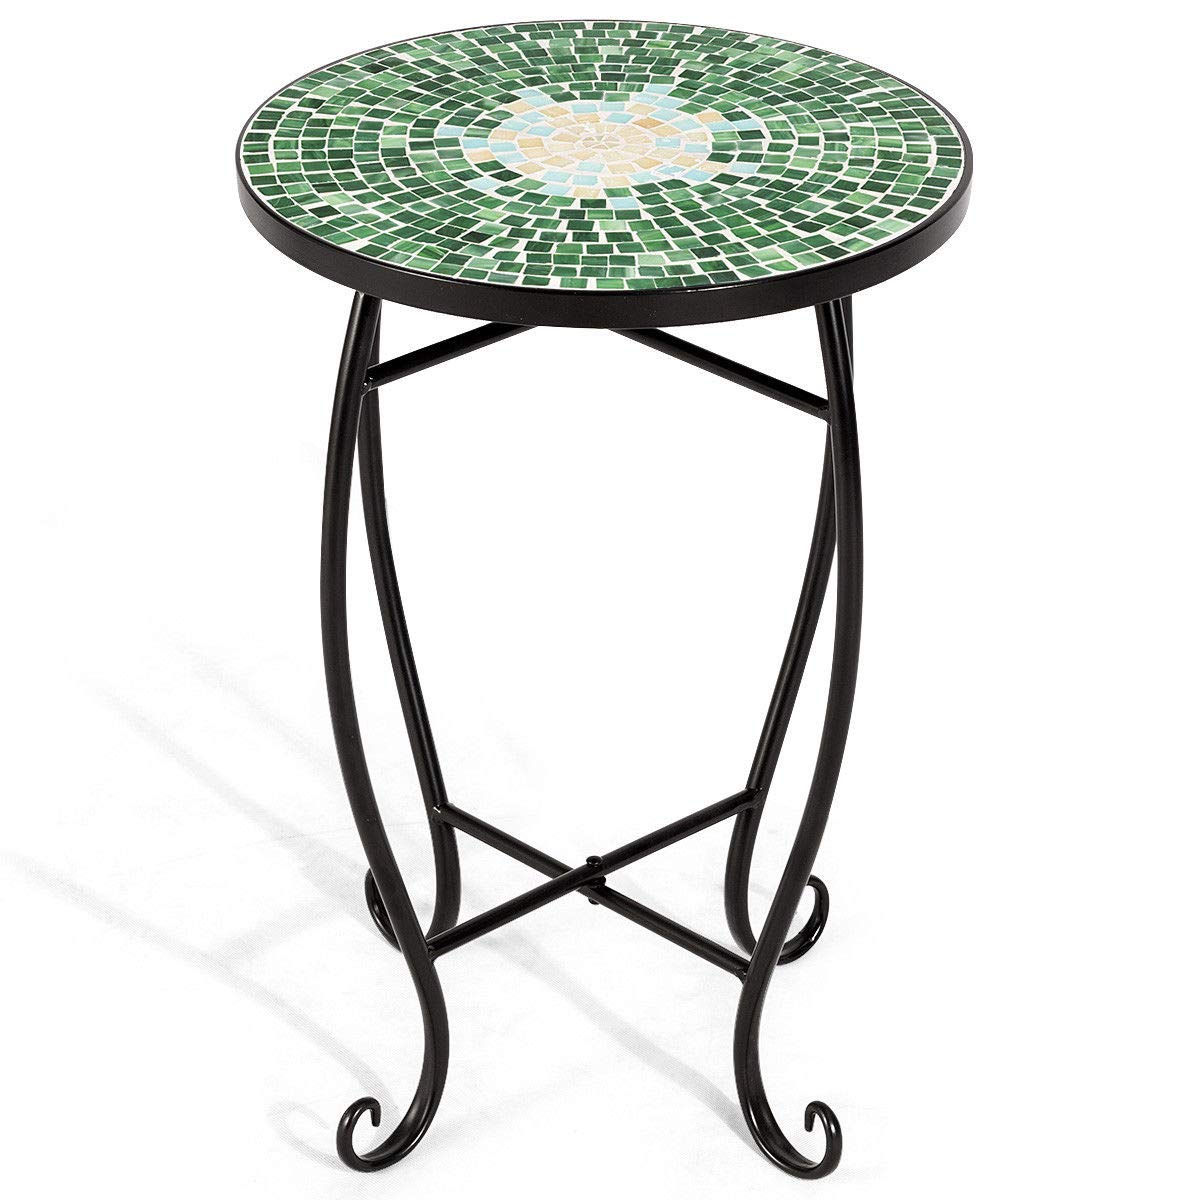 "NanaPluz 21"" H Green Round Plant Stand Steel Scheme Garden Decor Display Accent Table Curved Legs Mosaic Inlay Top with Ebook"